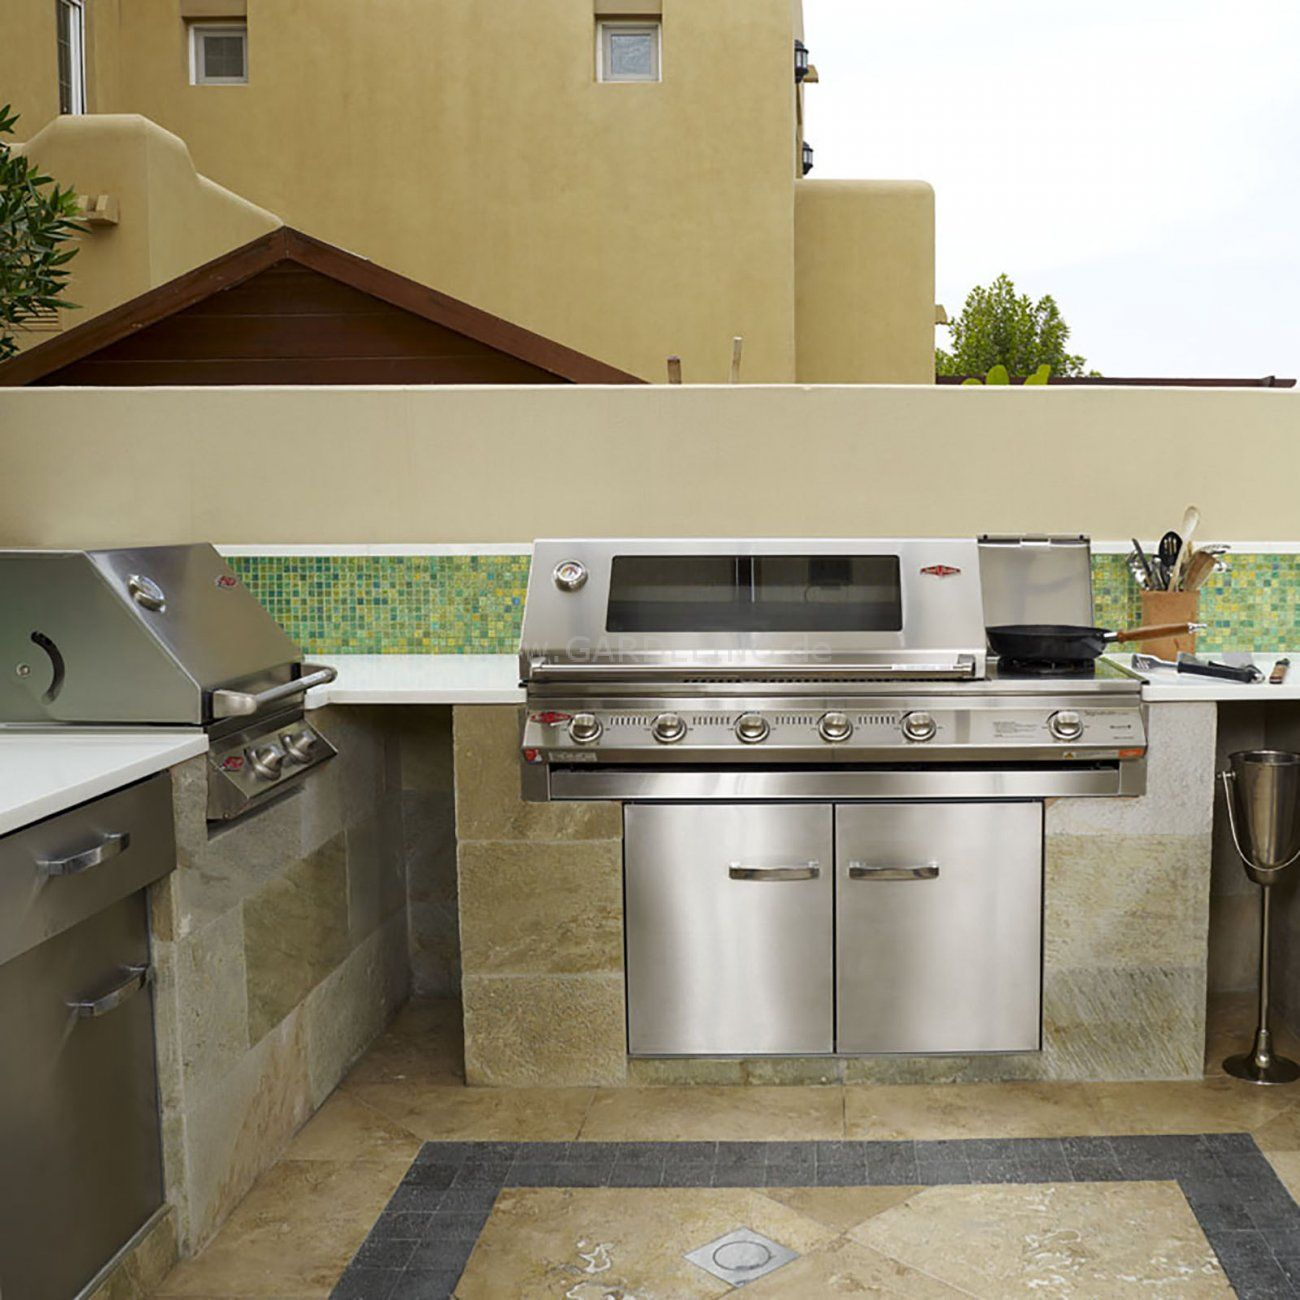 BeefEater Grill and Outdoorkitchen | BeefEater BBQ Grill | Pinterest